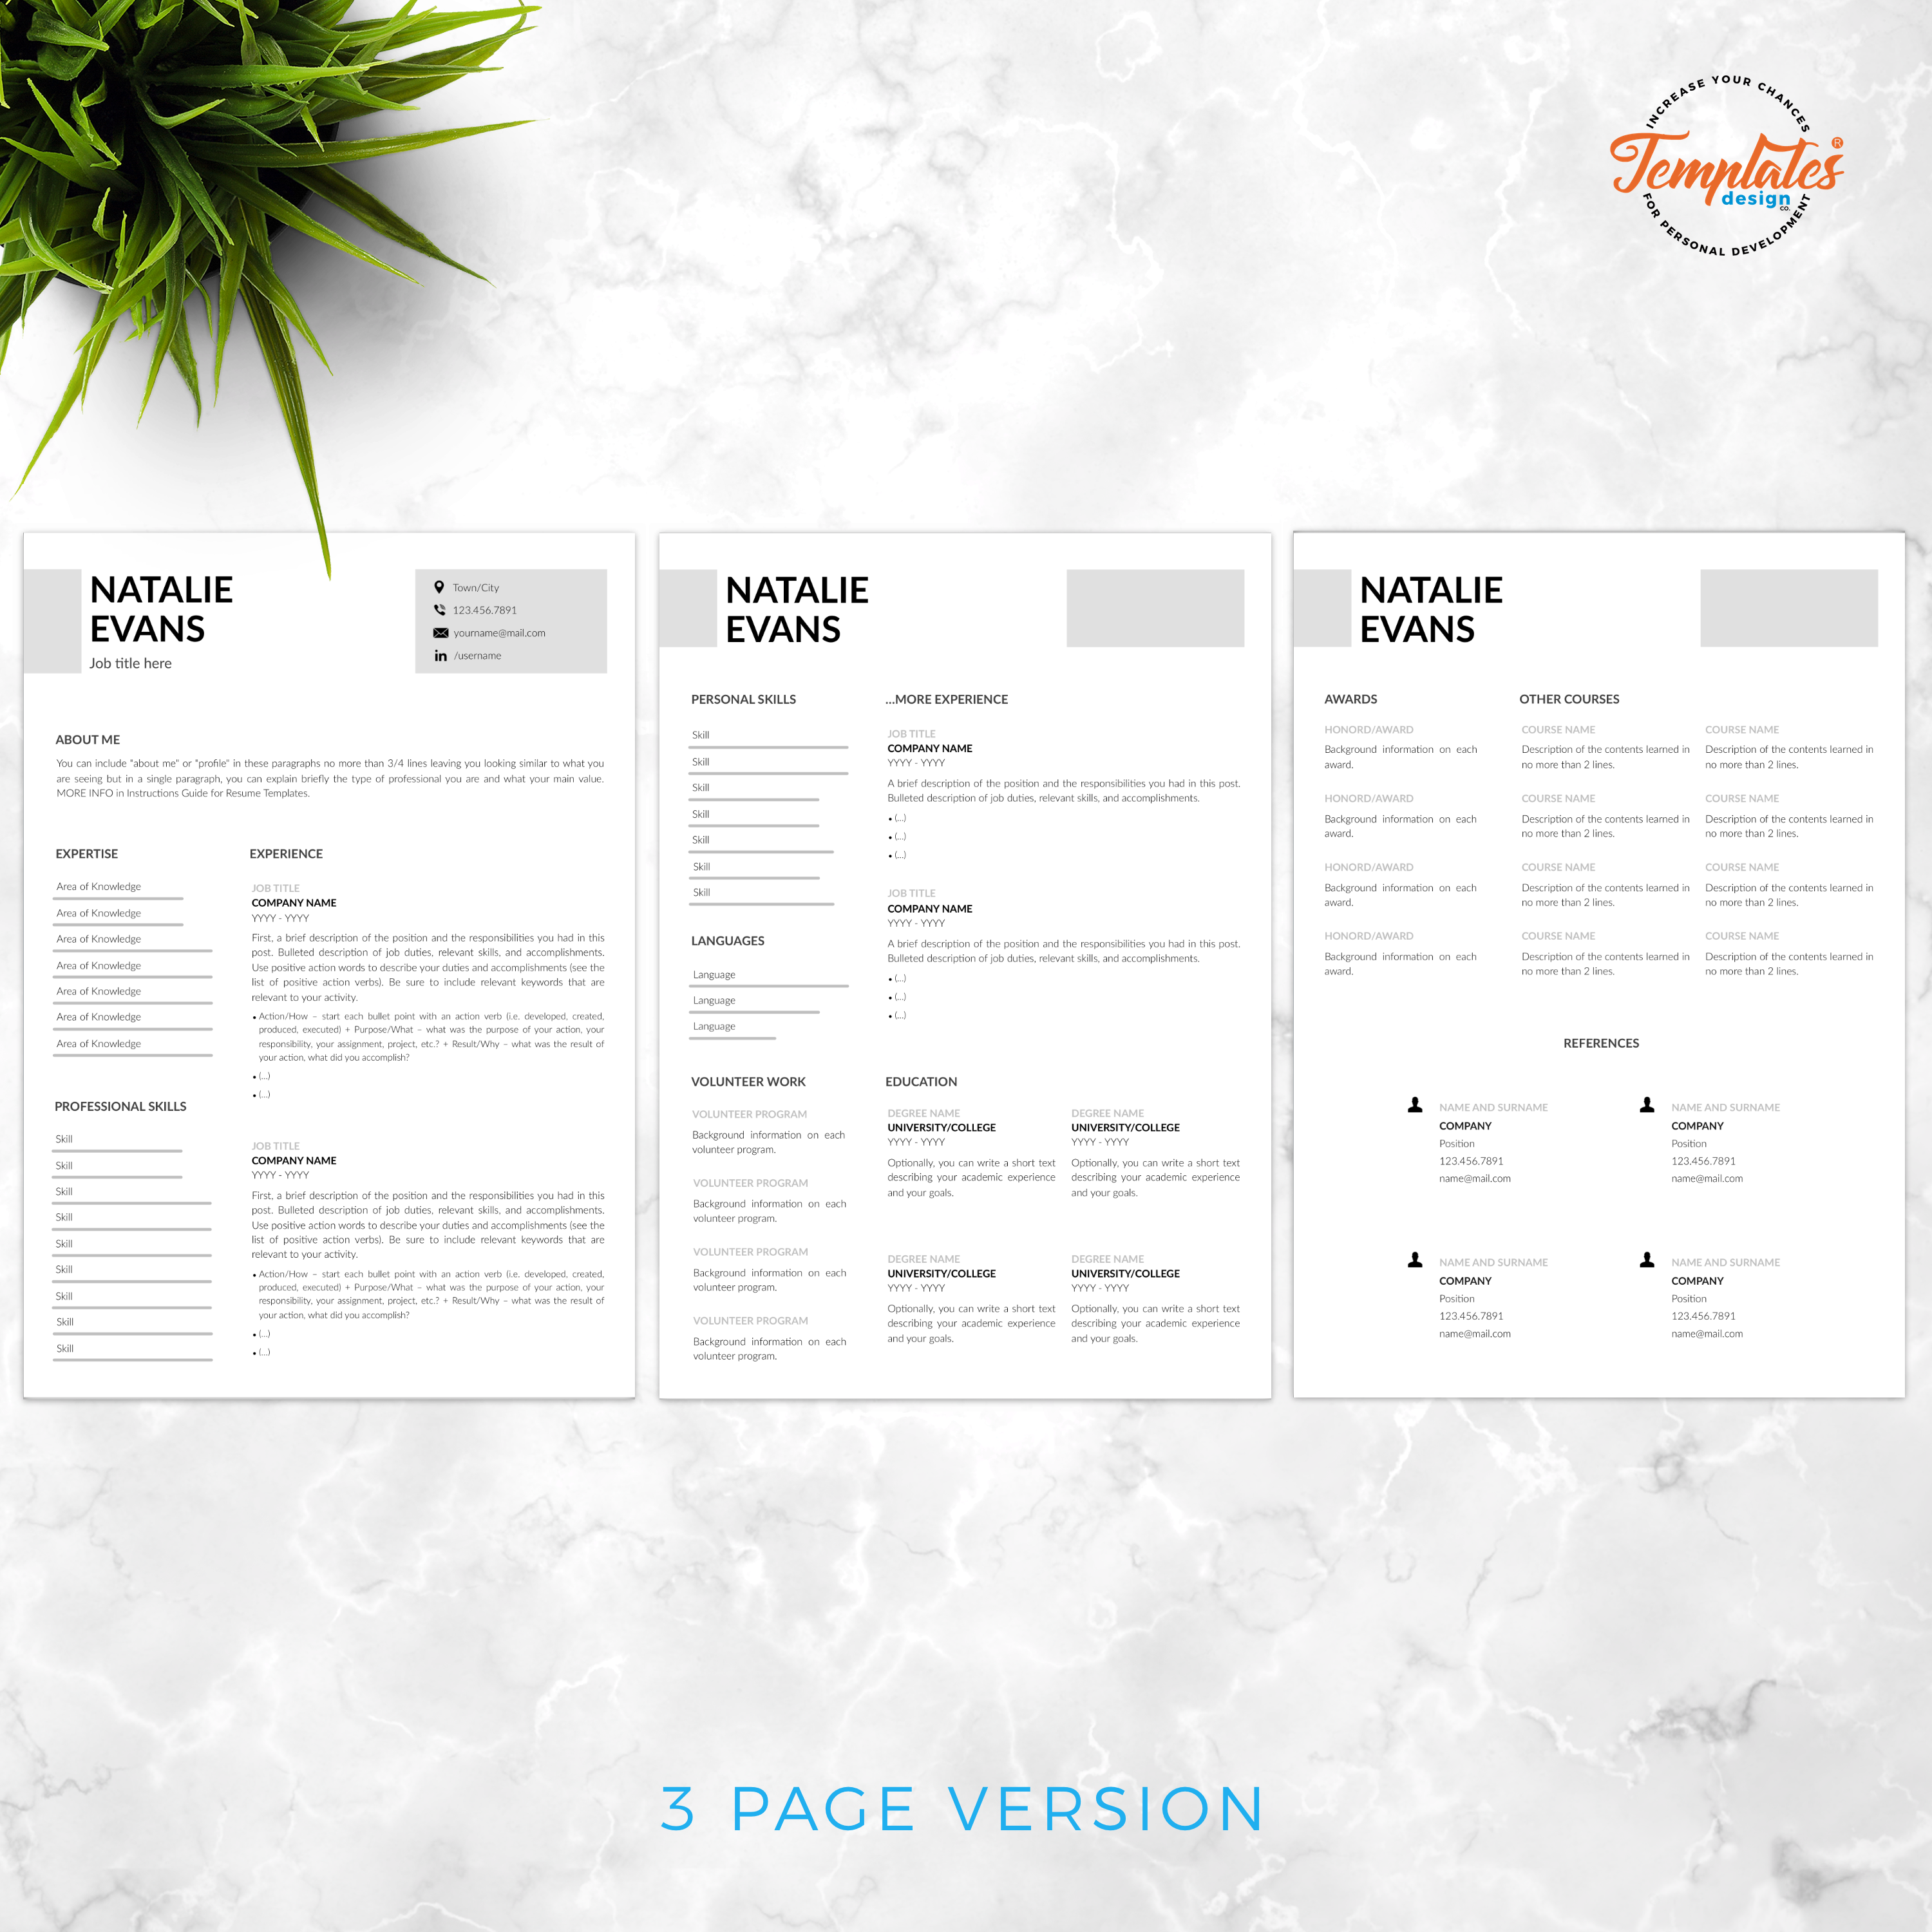 Resume Template For Ms Word Docx Pages Pages With Us Letter Size Files And A4 Size Files 1 2 Resume Templates Modern Resume Template Creative Resume